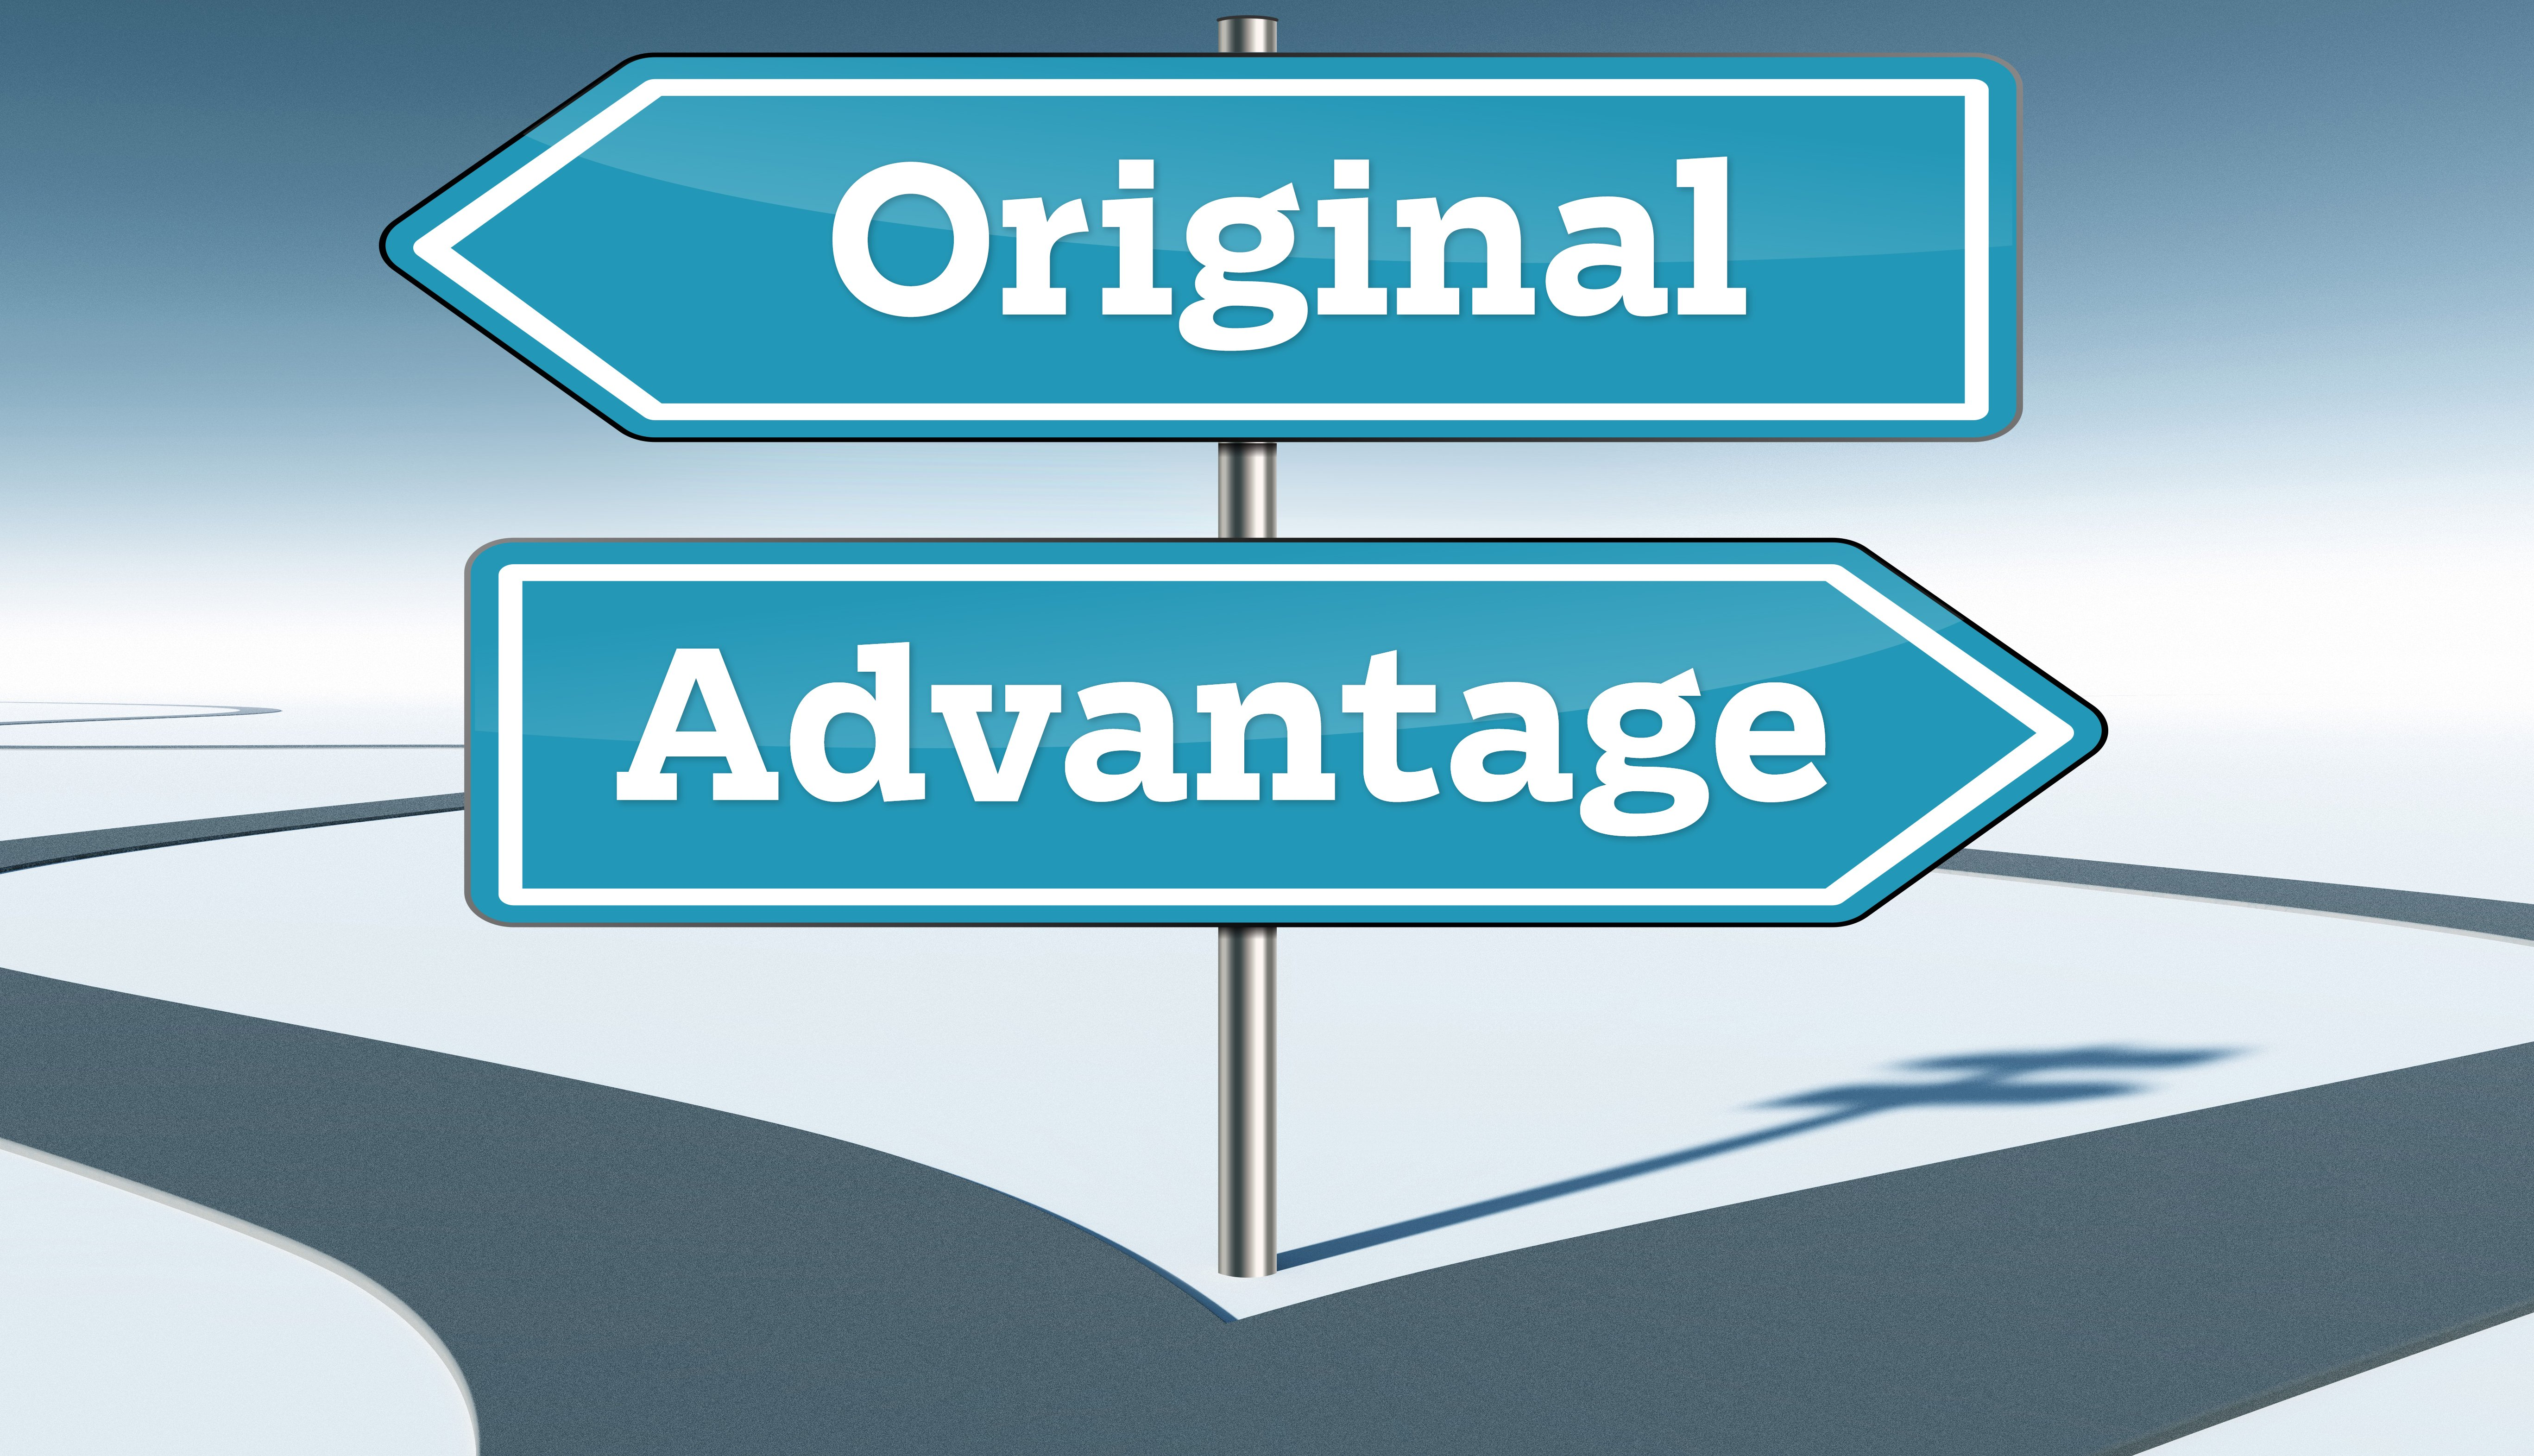 illustration of two divergent signs at a fork in a road one says original and the other says advantage